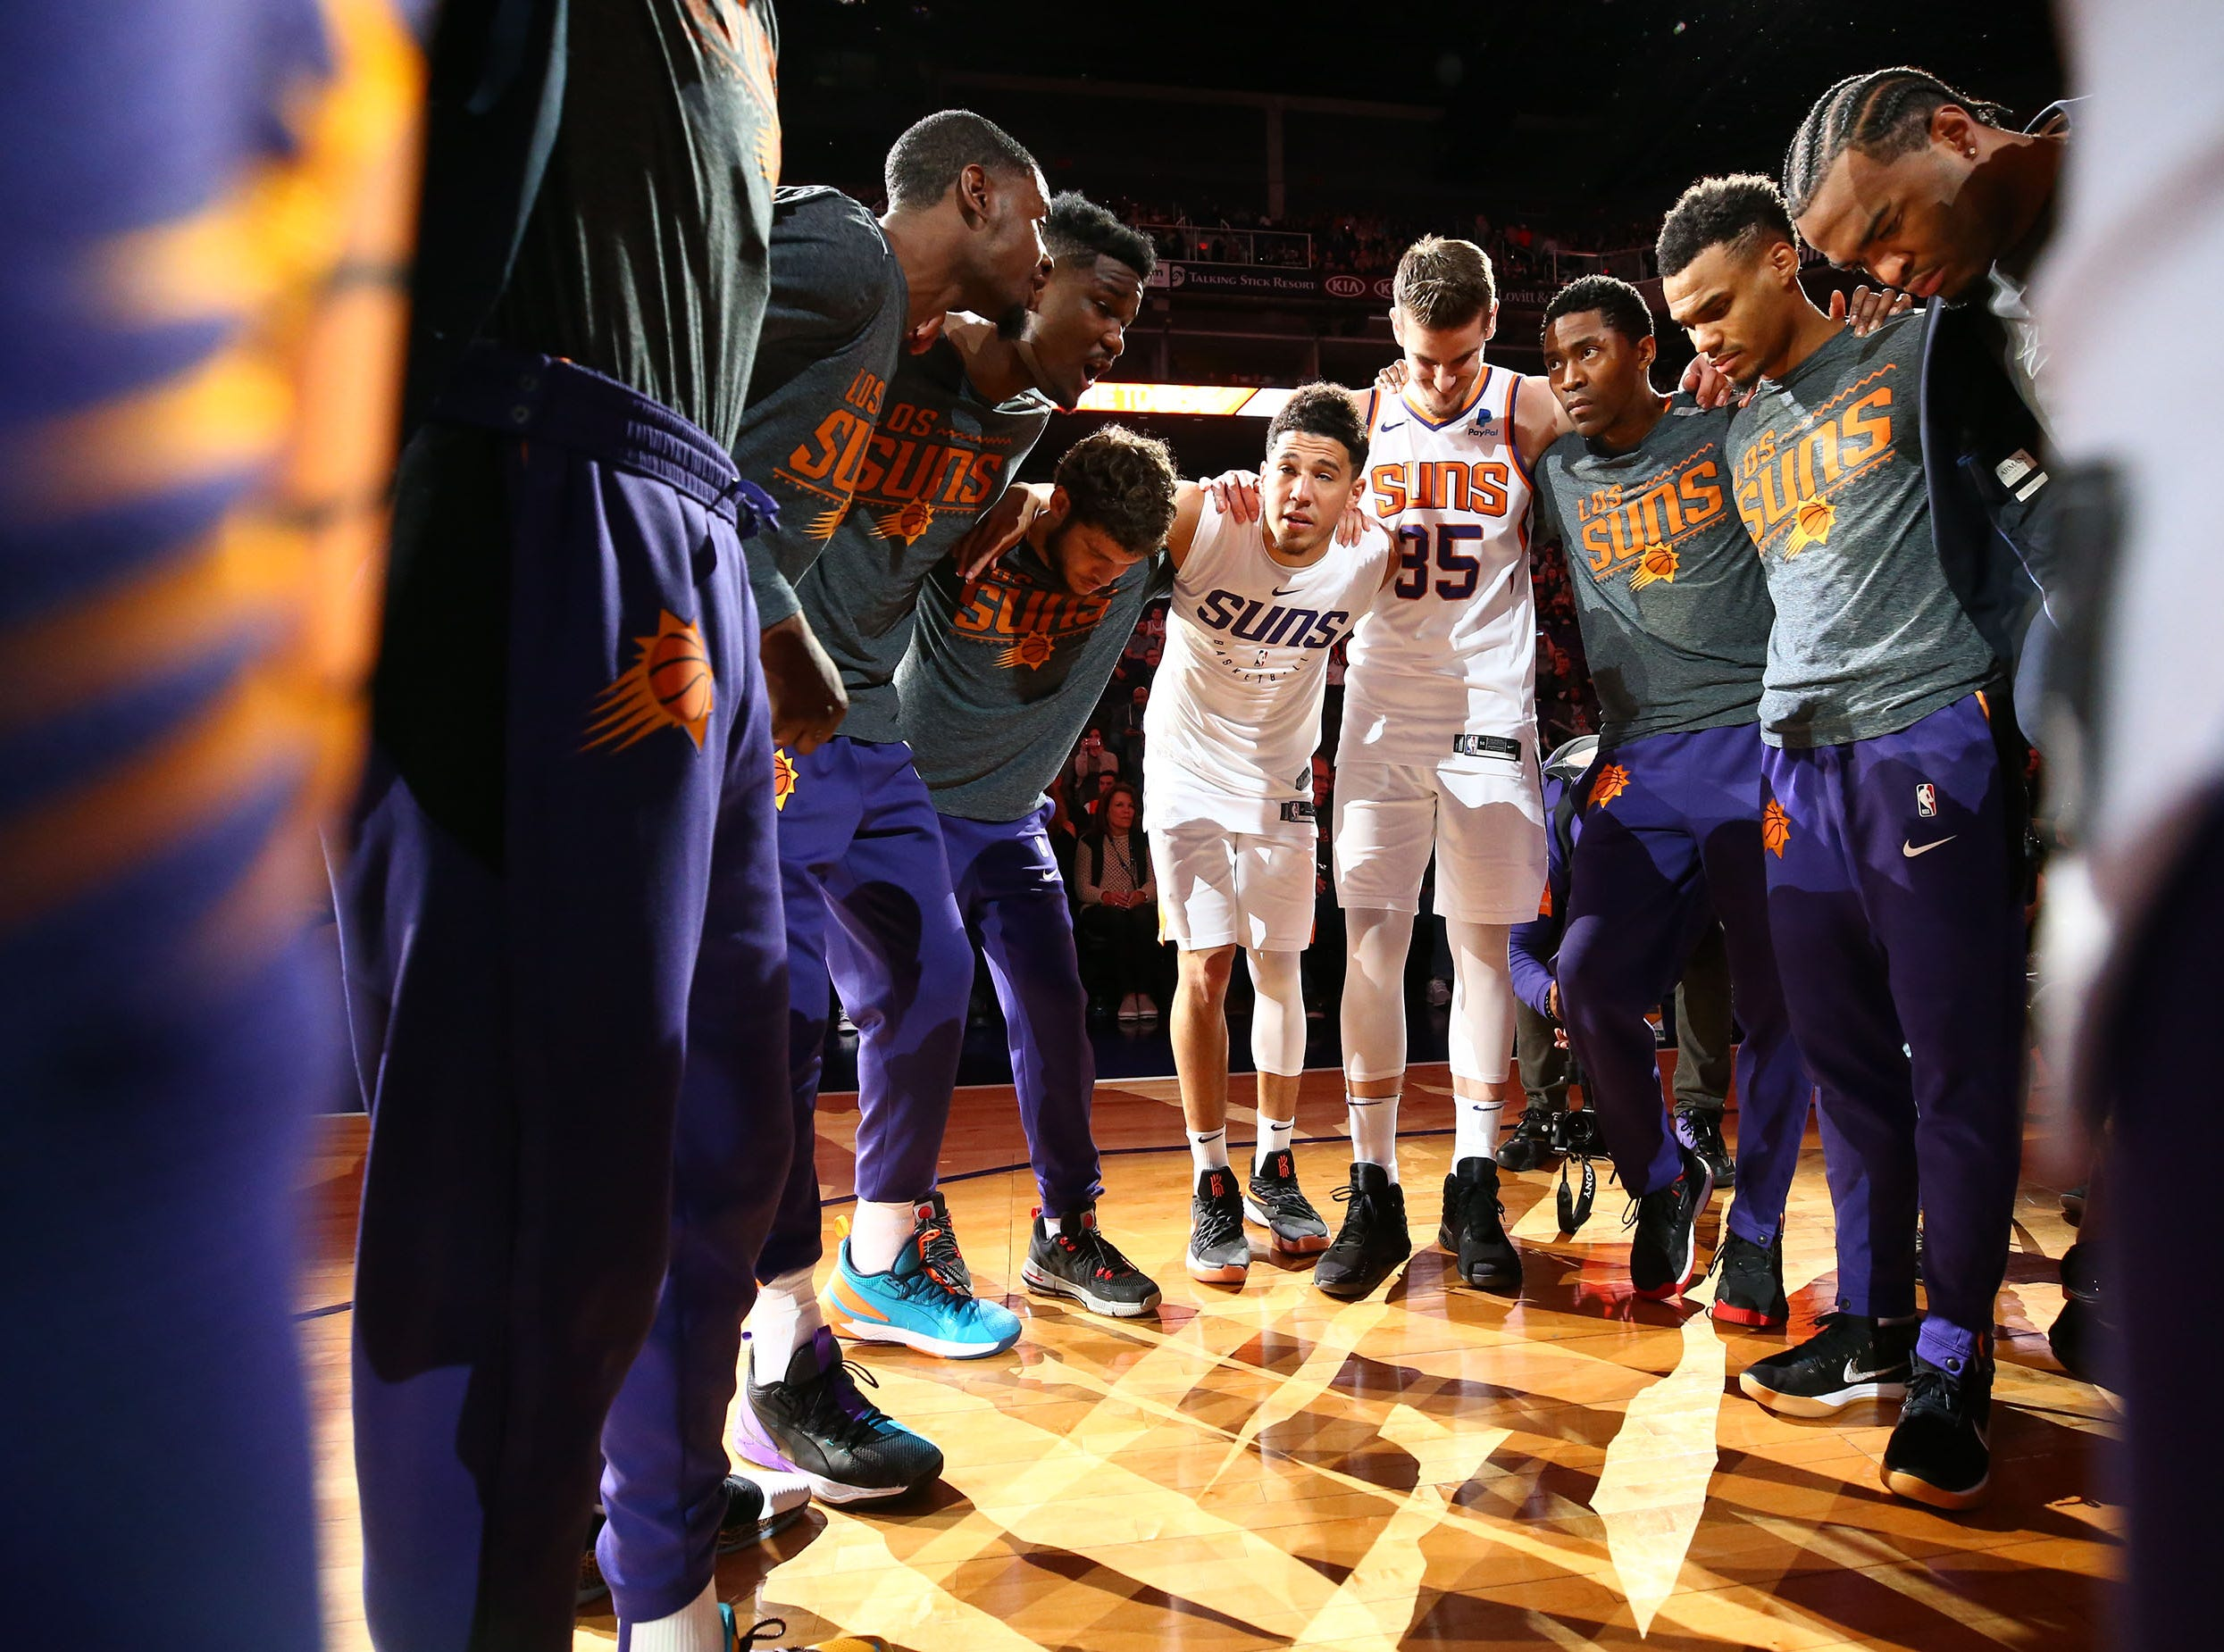 Phoenix Suns guard Devin Booker (1) huddles with the team before playing the Utah Jazz on Mar. 13, 2019 at Talking Stick Resort Arena in Phoenix, Ariz.